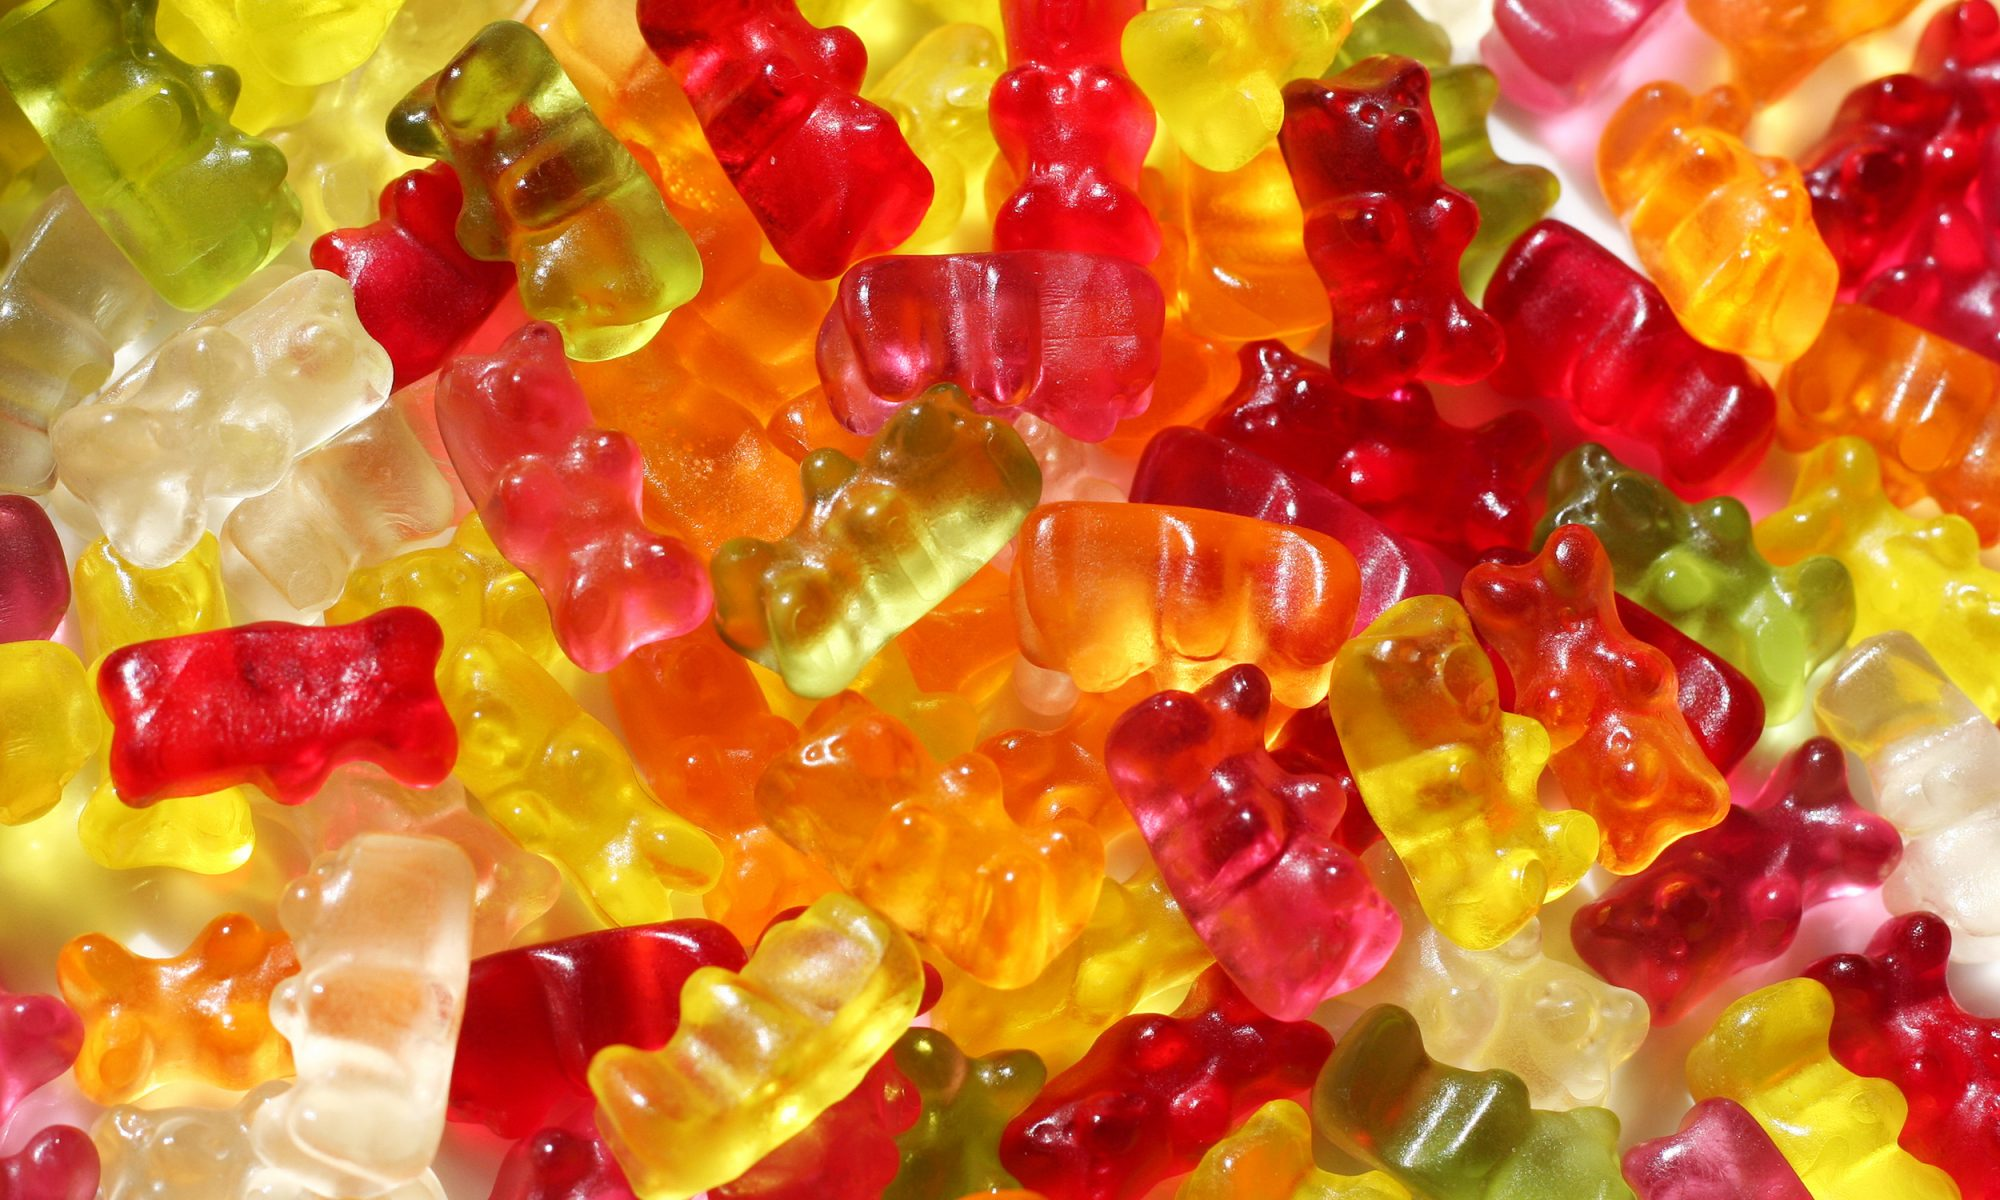 EC: Bourbon Gummy Bears Are Your Dad's New Favorite Candy